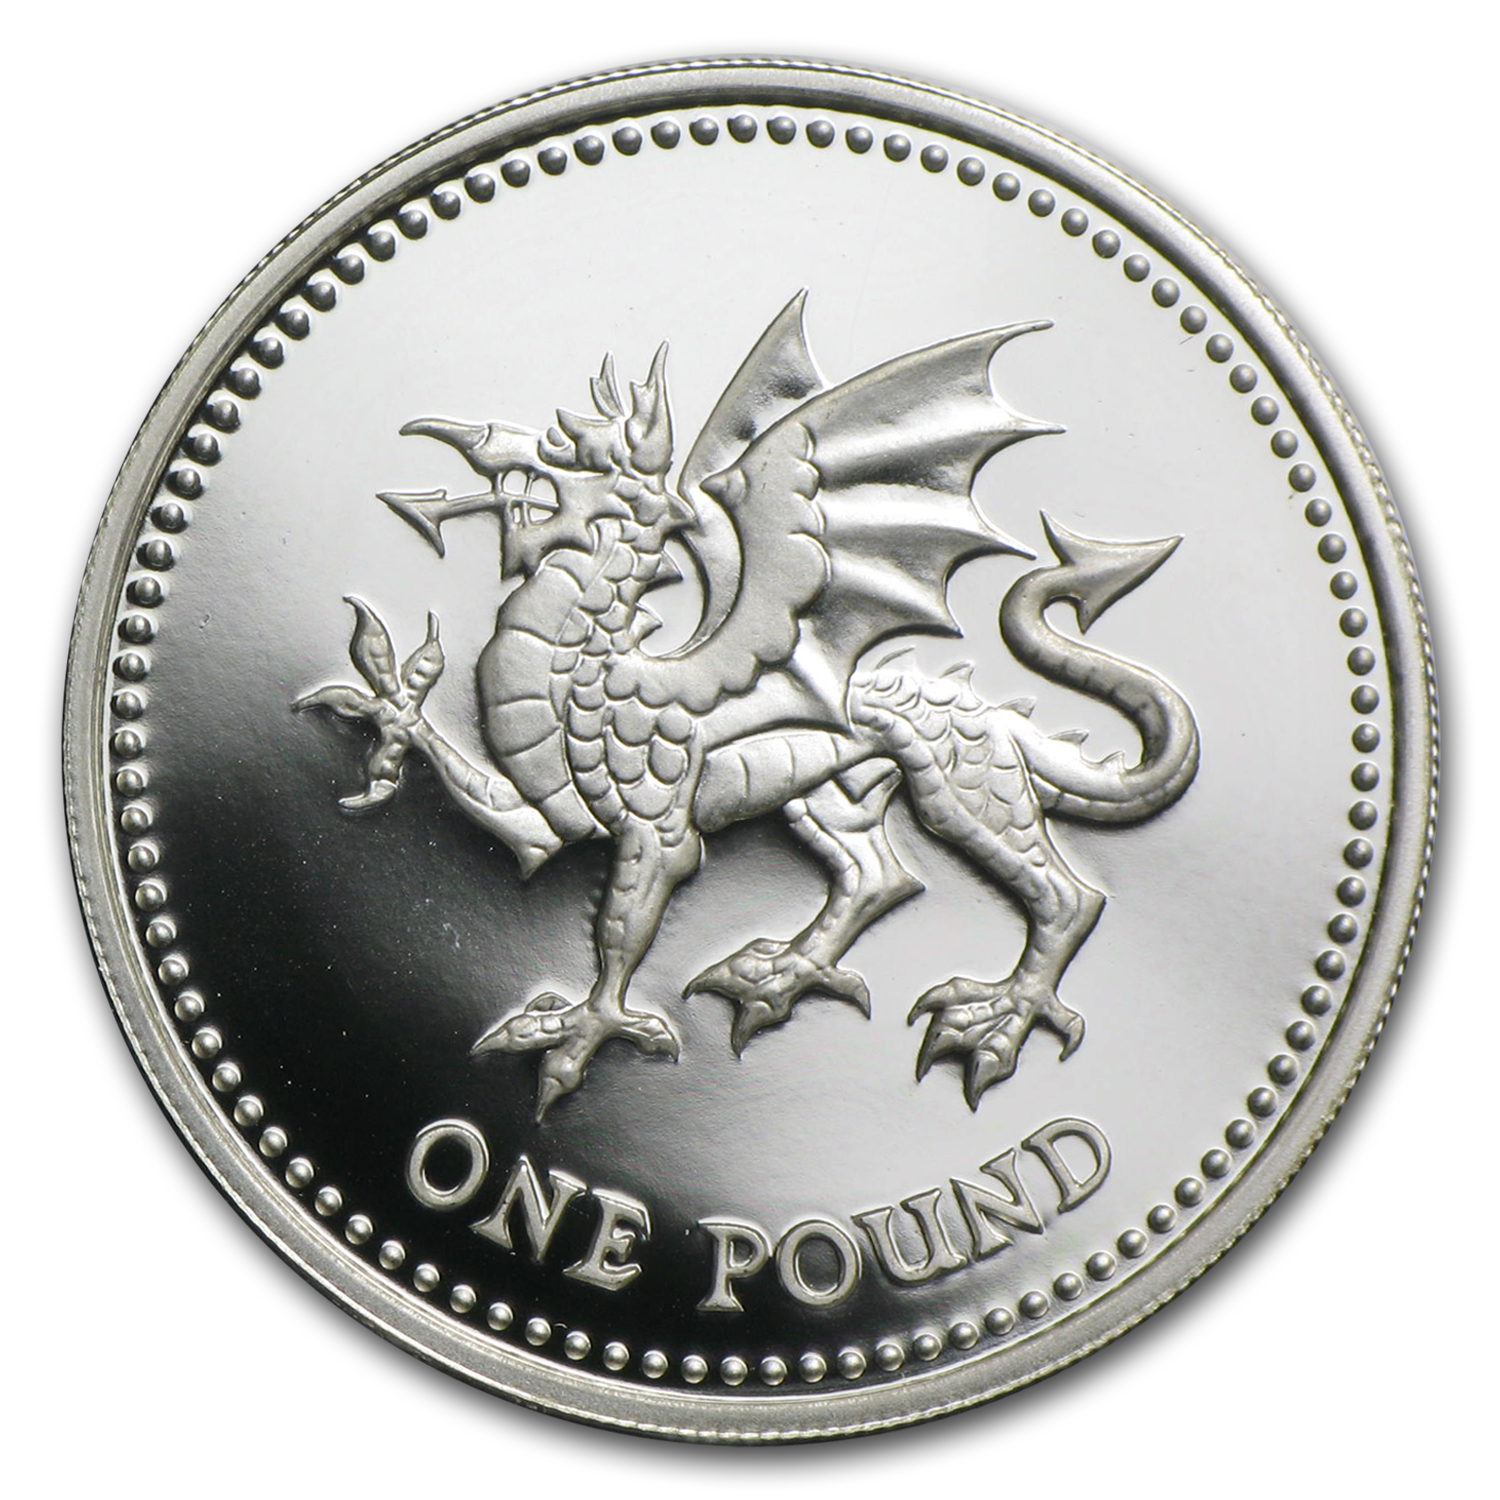 United Kingdom - Silver Proof Piedfort - One Pound Coin